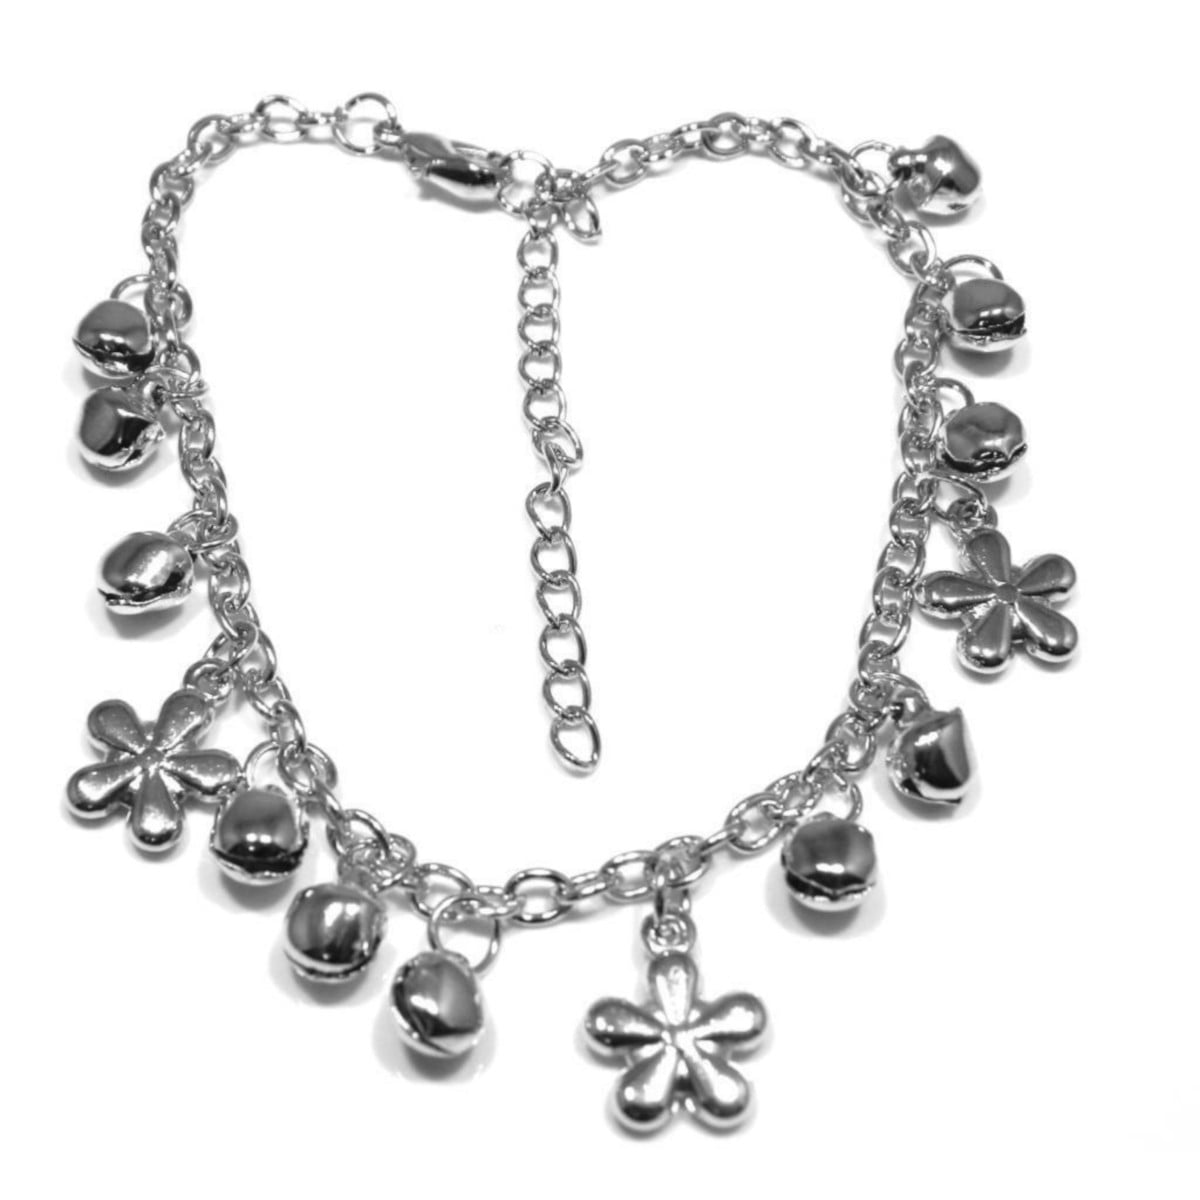 Charm anklet in silver plate with flowers and bells.